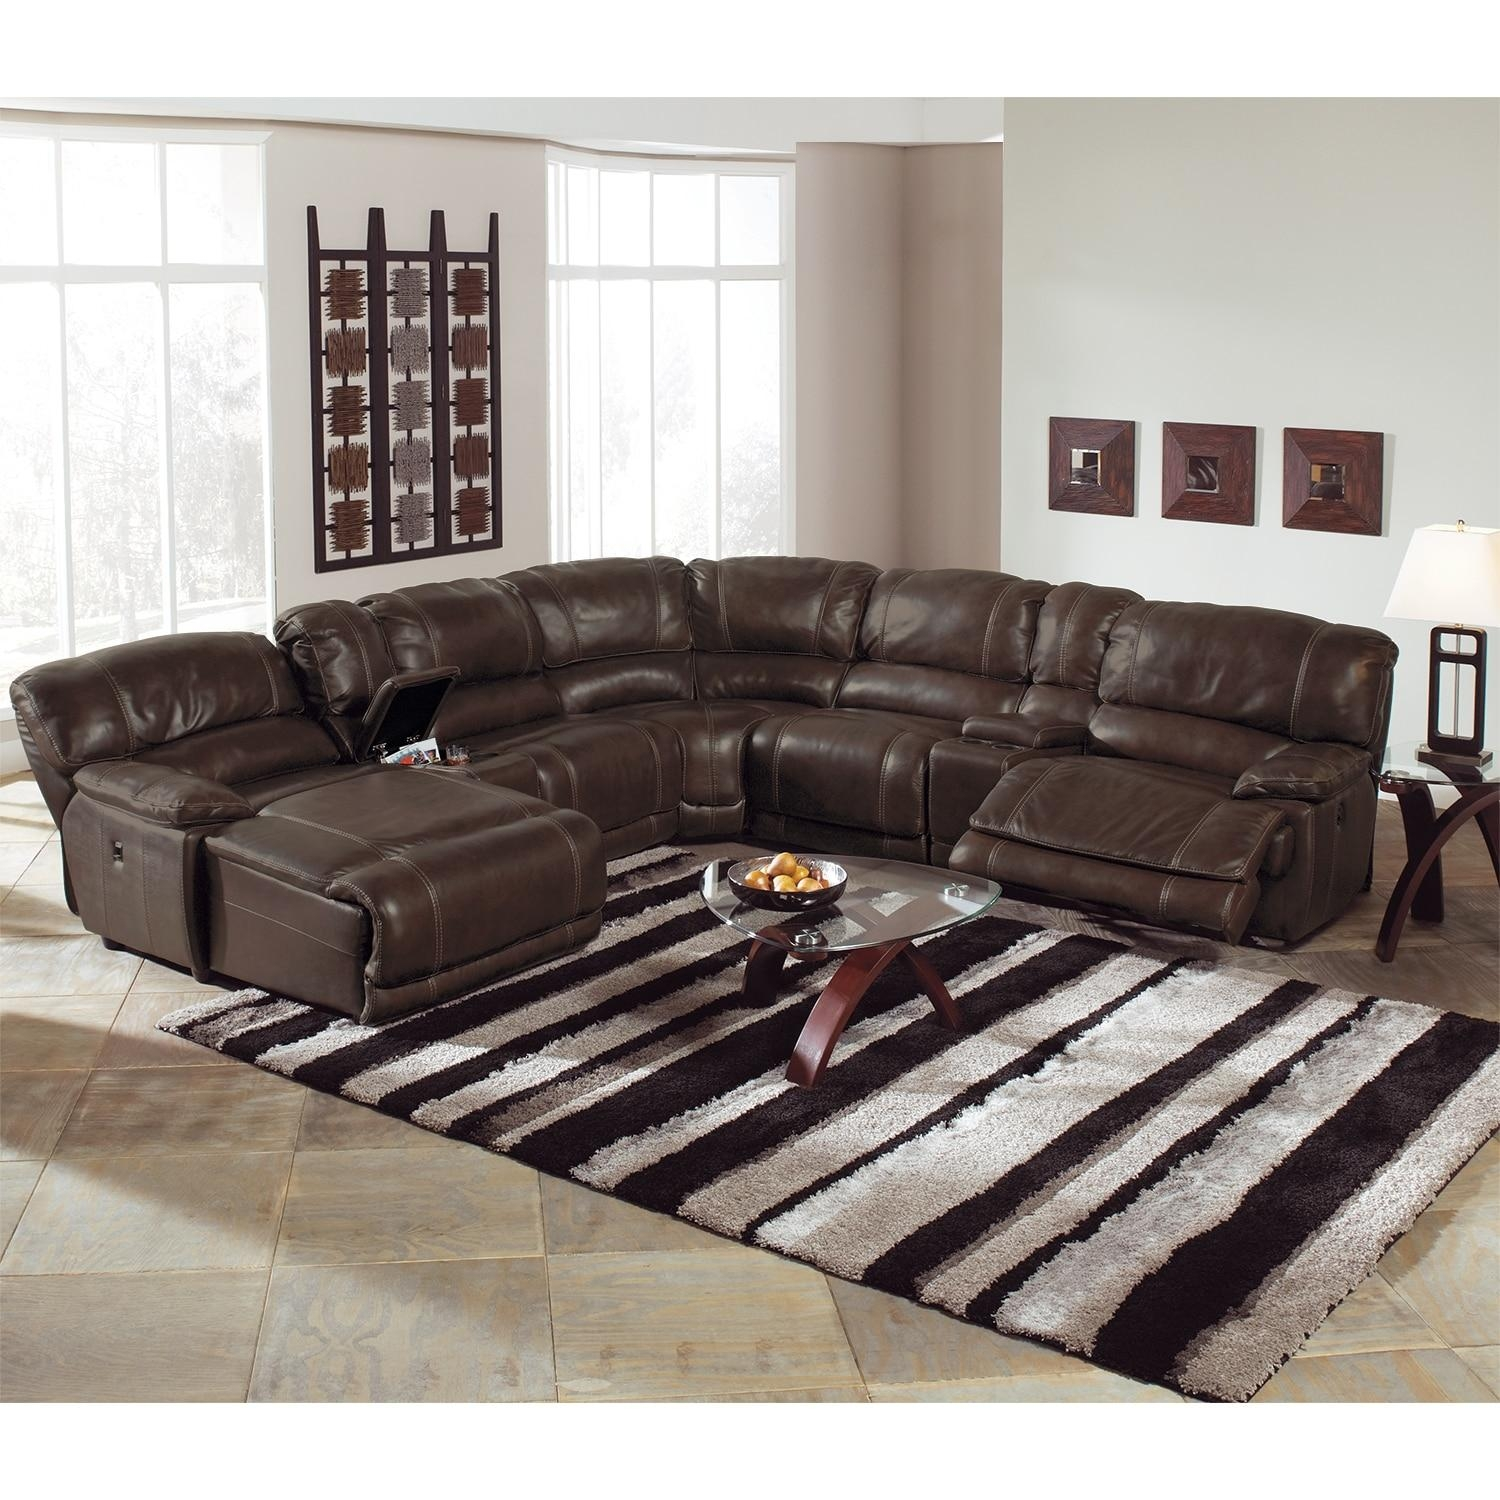 Sofa Ideas 3 Piece Sectional Sofa Slipcovers Explore 8 of 20